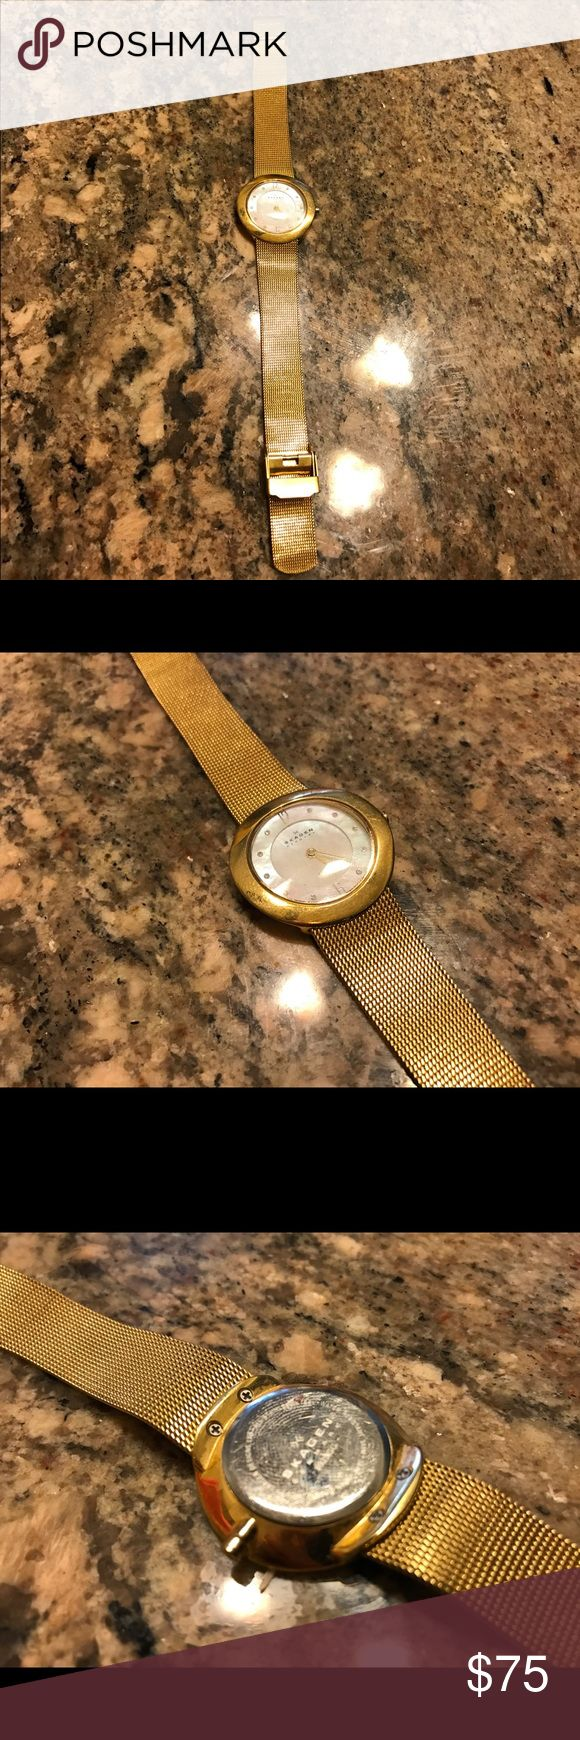 Skagen Ladies Gold watch Preloved with basic signs of usage like scratches it doent work at the moment maybe  needs batteries. Skagen Accessories Watches